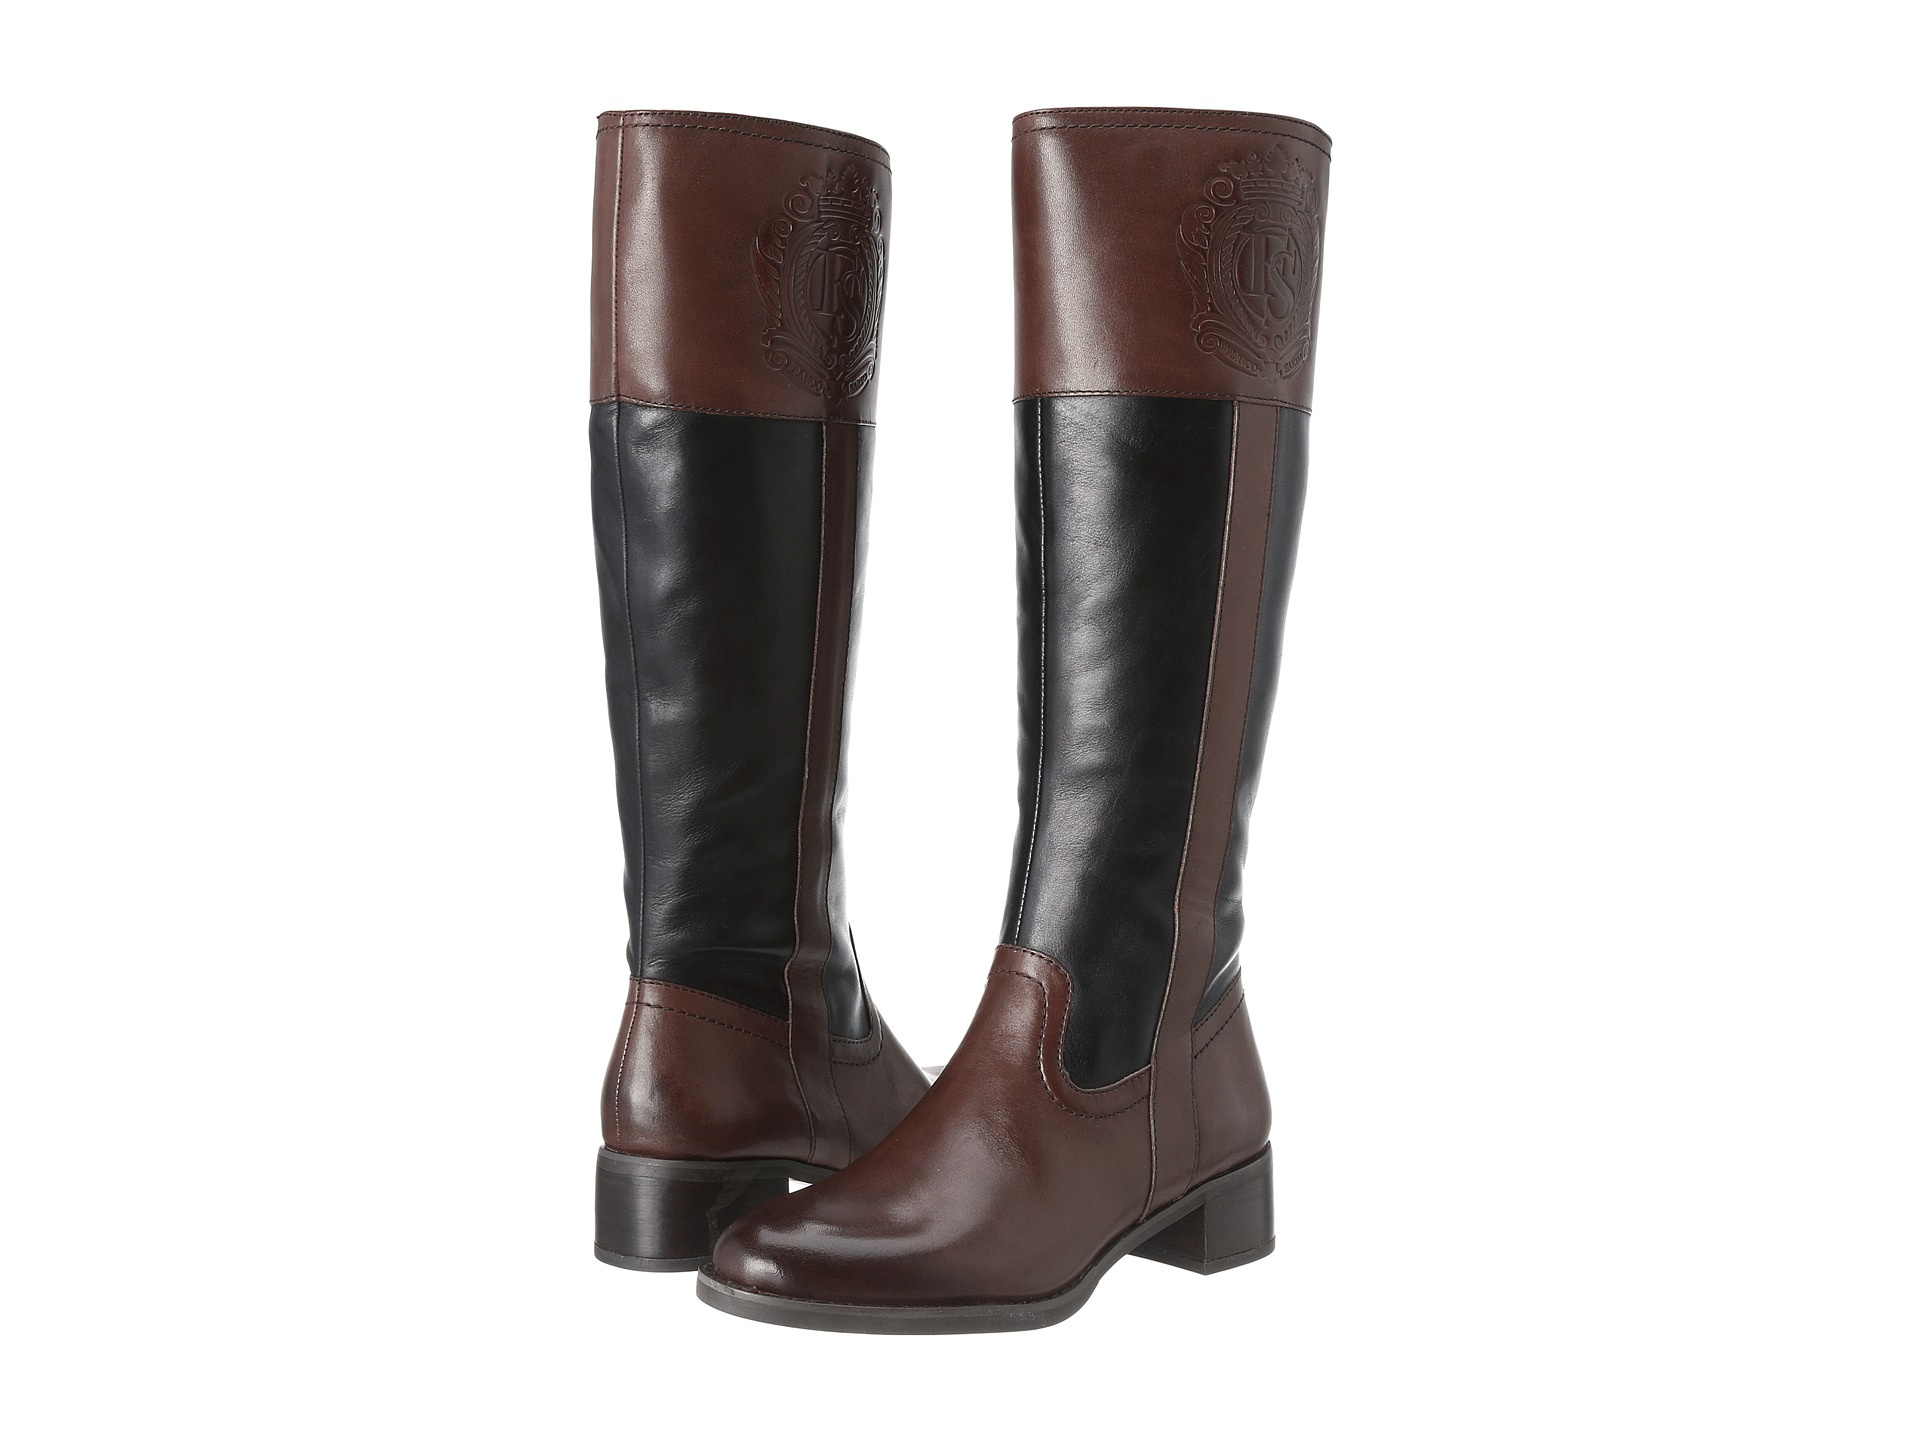 Original Leather Riding Boots For Women Women39s Merona Kasia Leather Riding